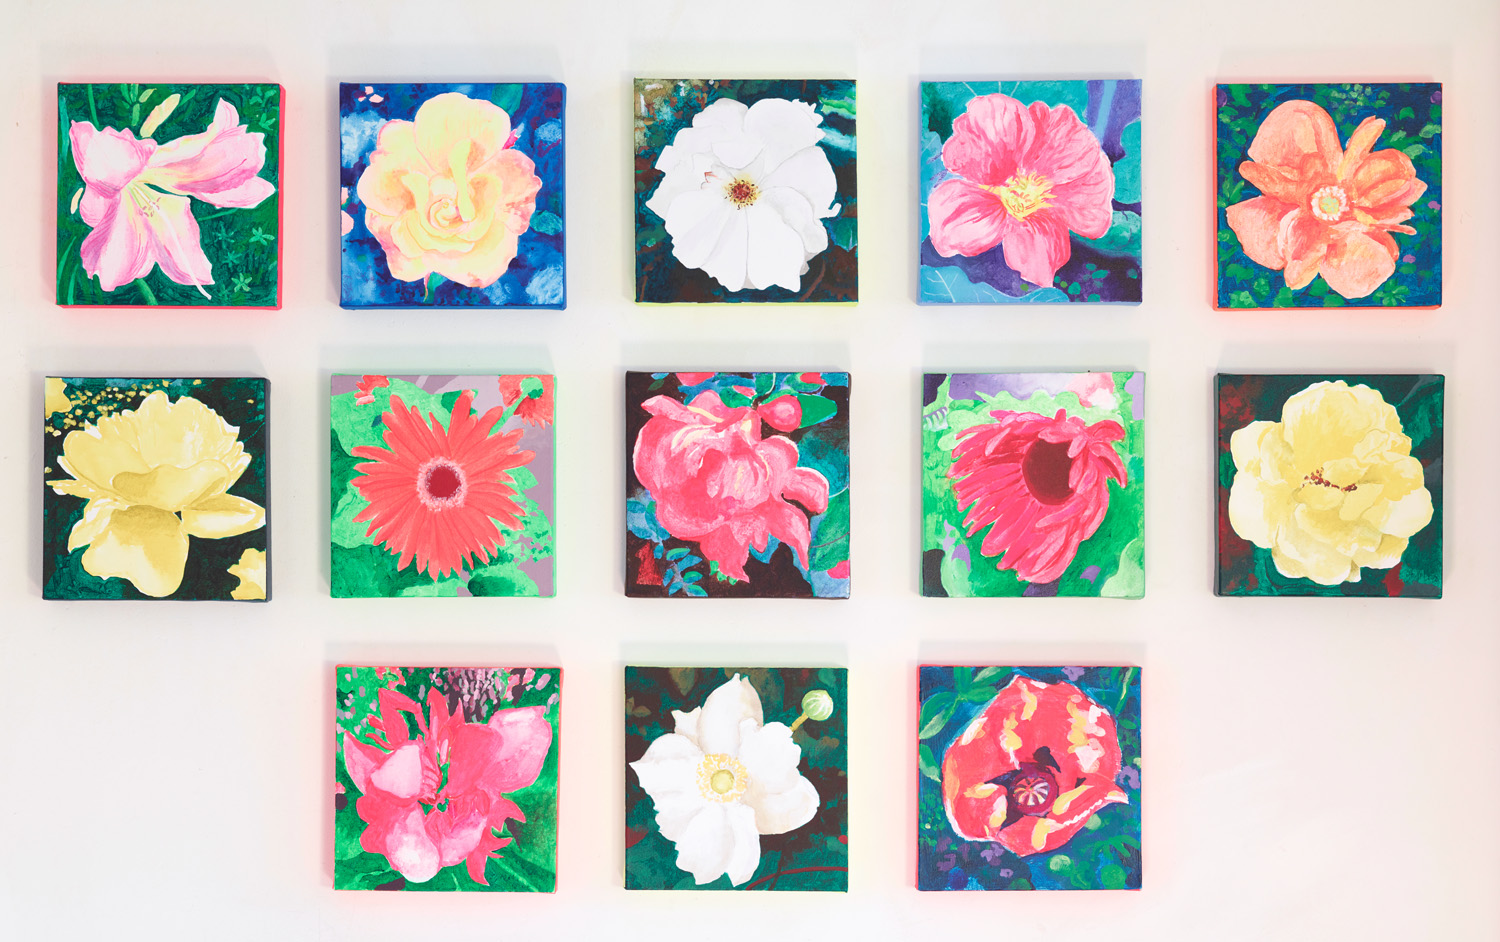 "Flower Piece. 13 Mixed Media on Canvas Paintings, each 10""x10"". 2016-17"